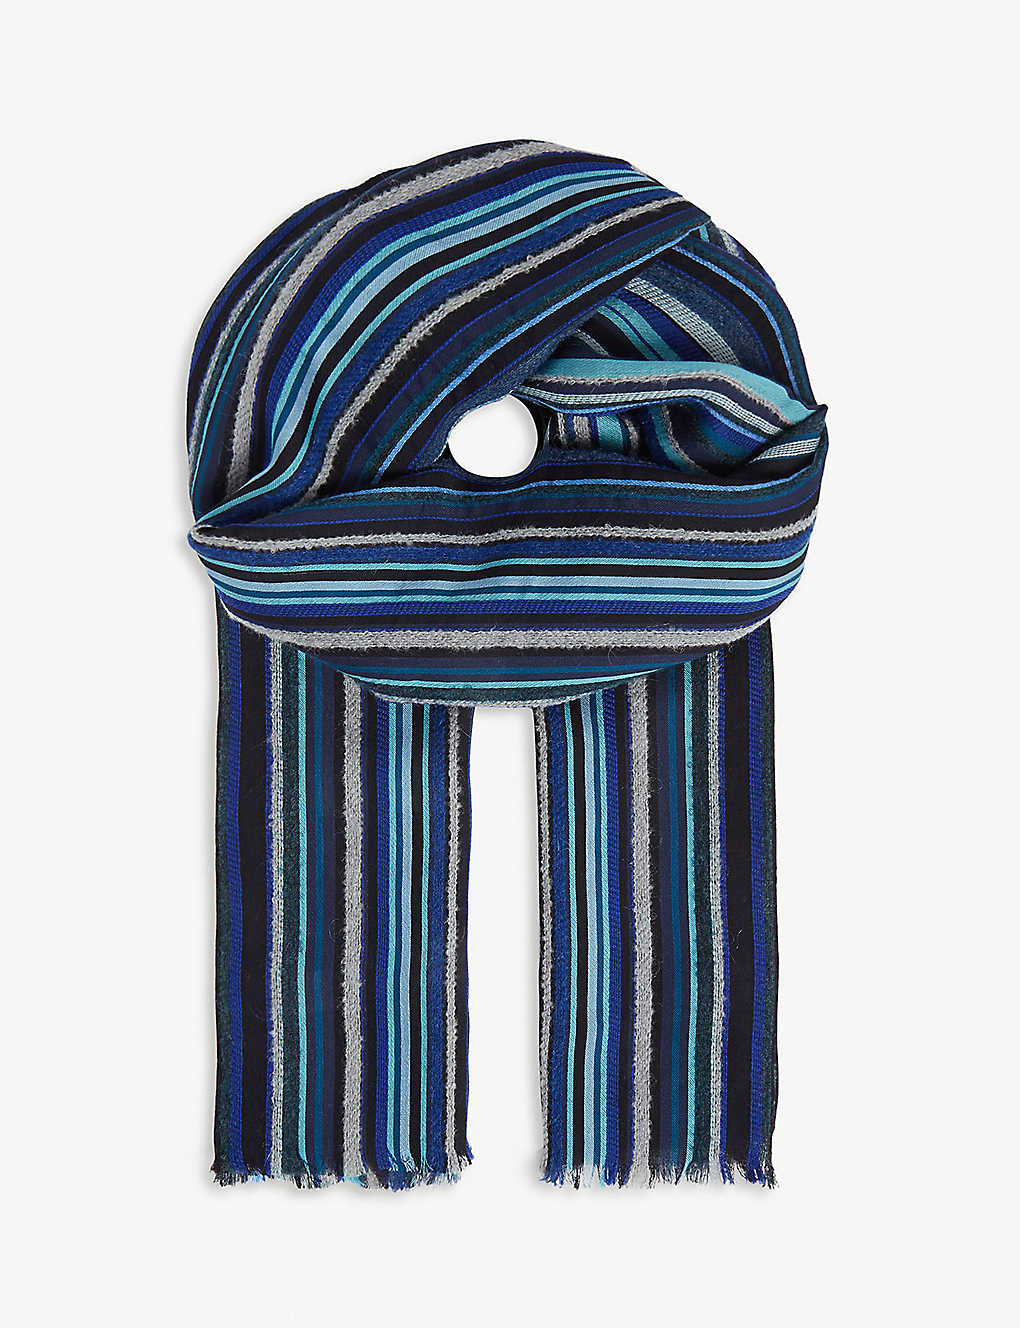 PAUL SMITH ACCESSORIES: Mextured Textured stripe wool scarf